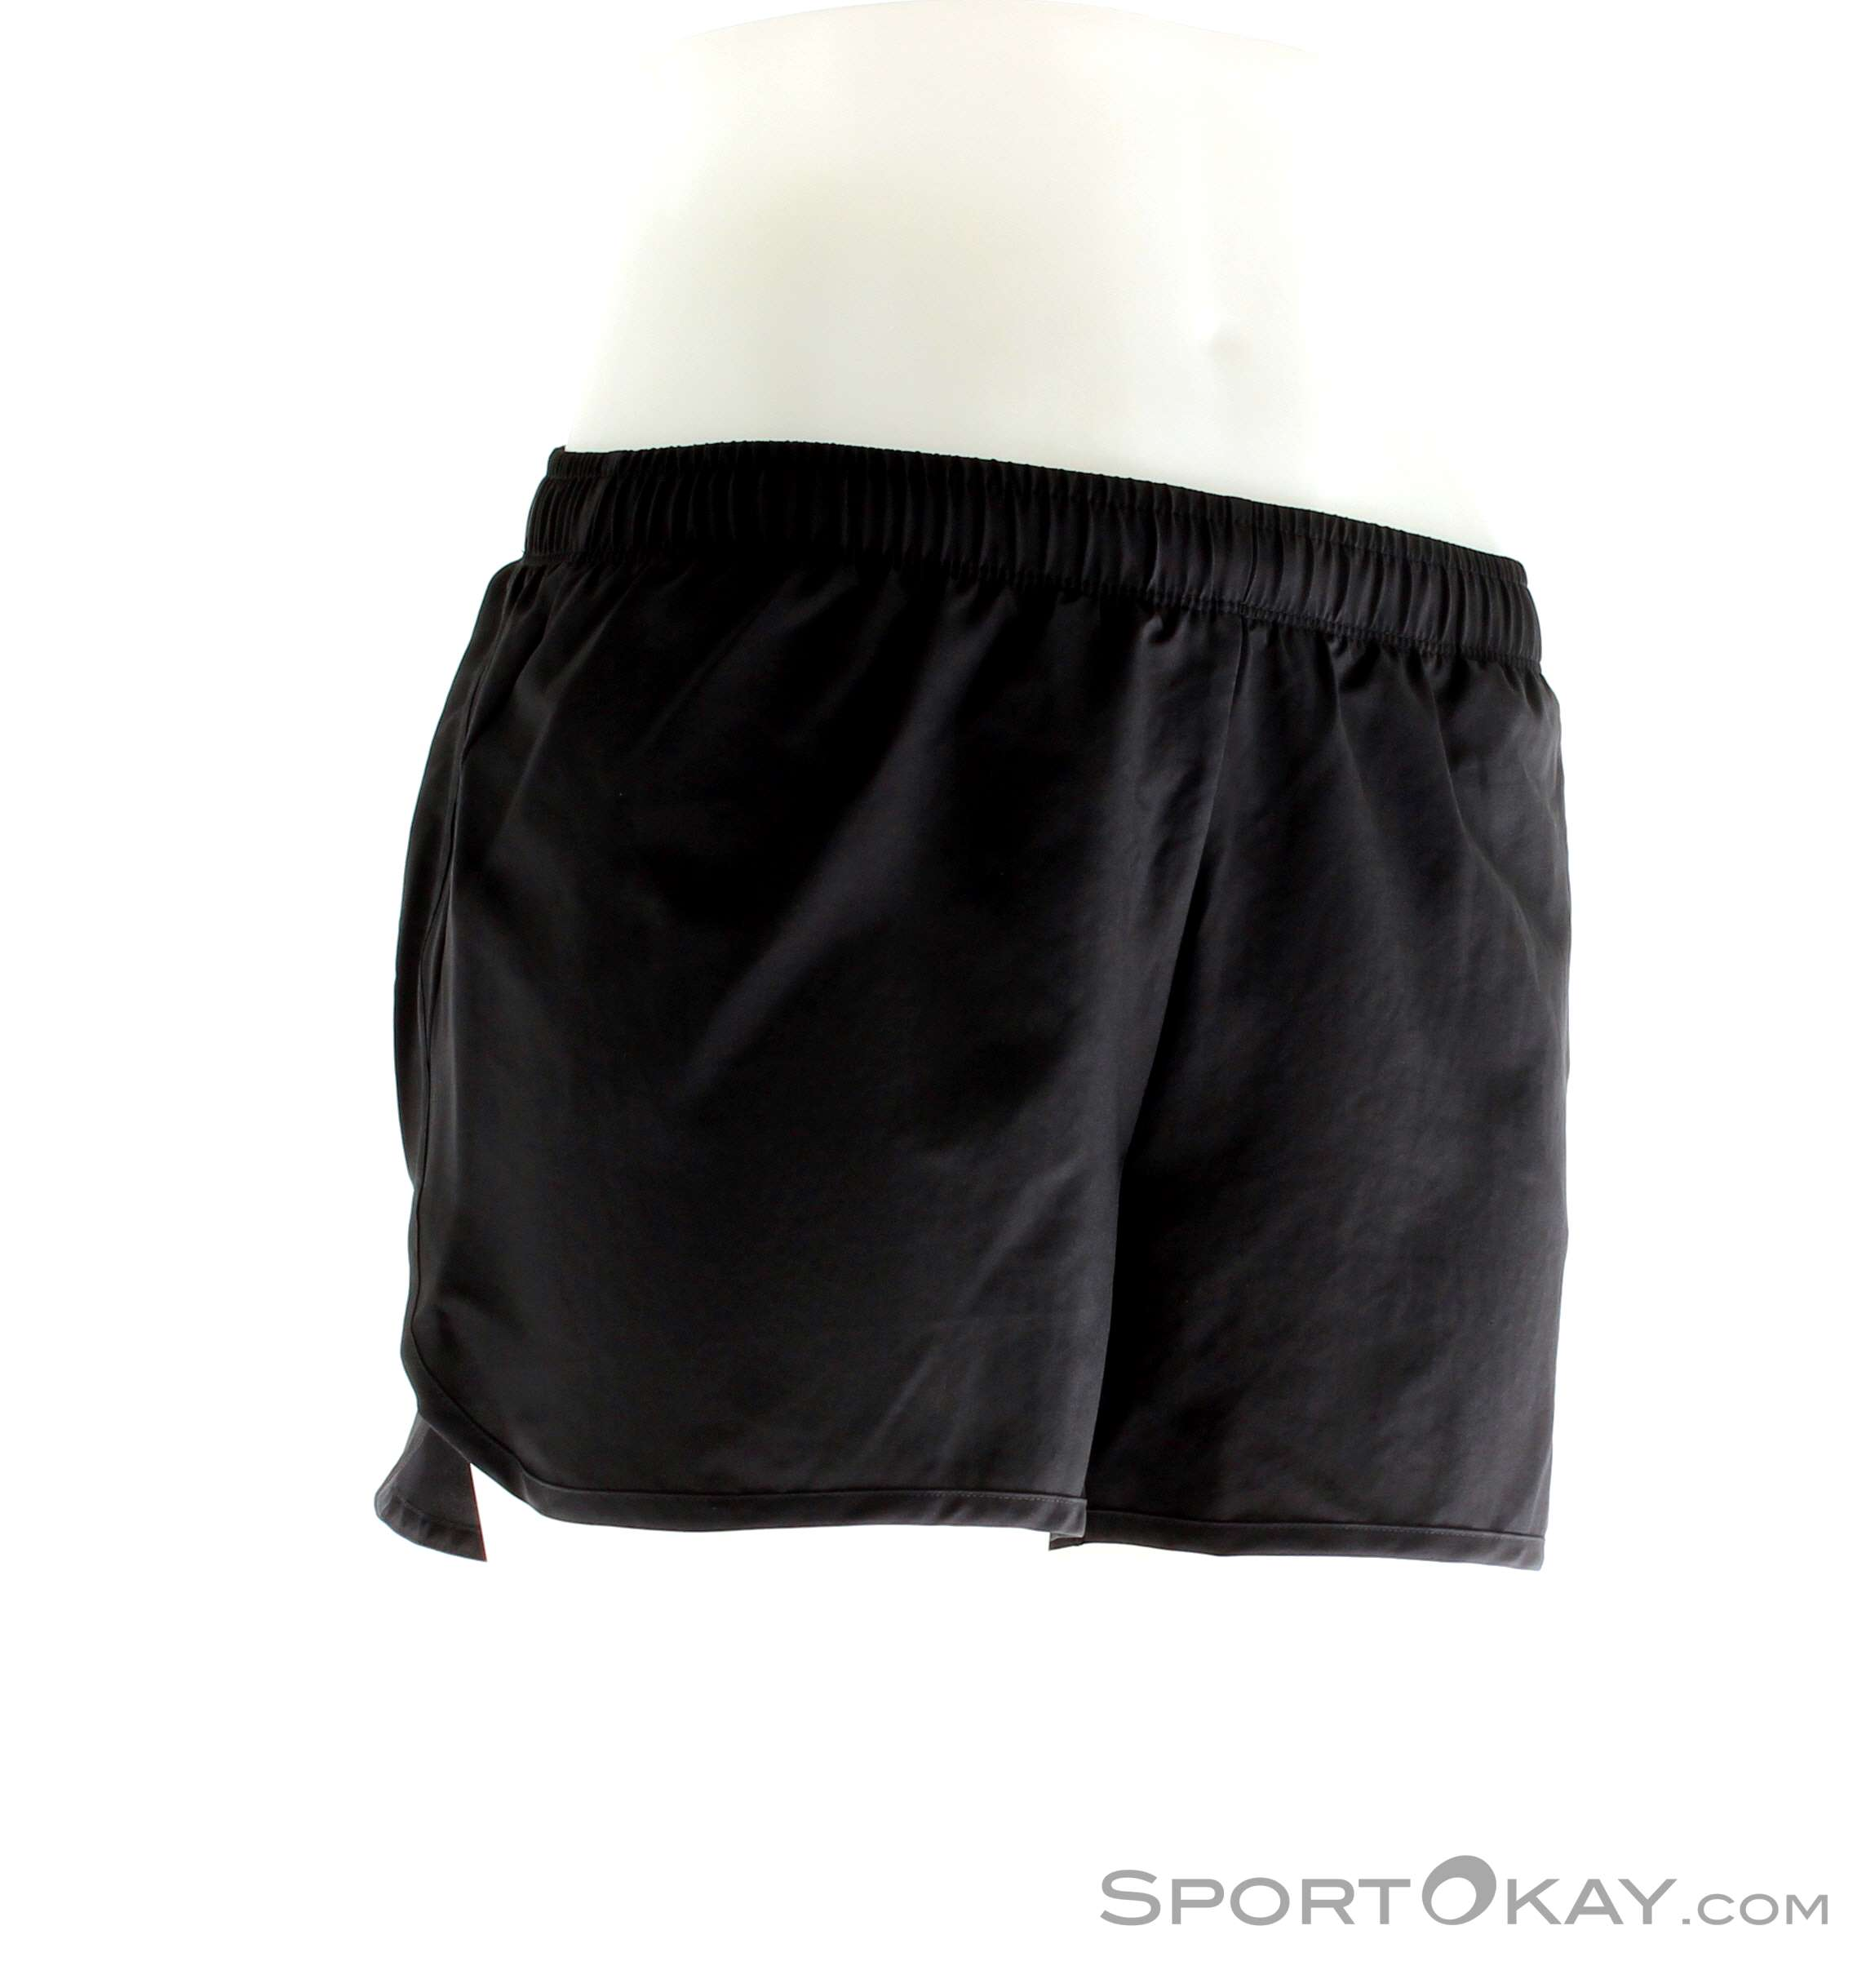 Asics 3.5IN Short Woven Womens Running Shorts Pants